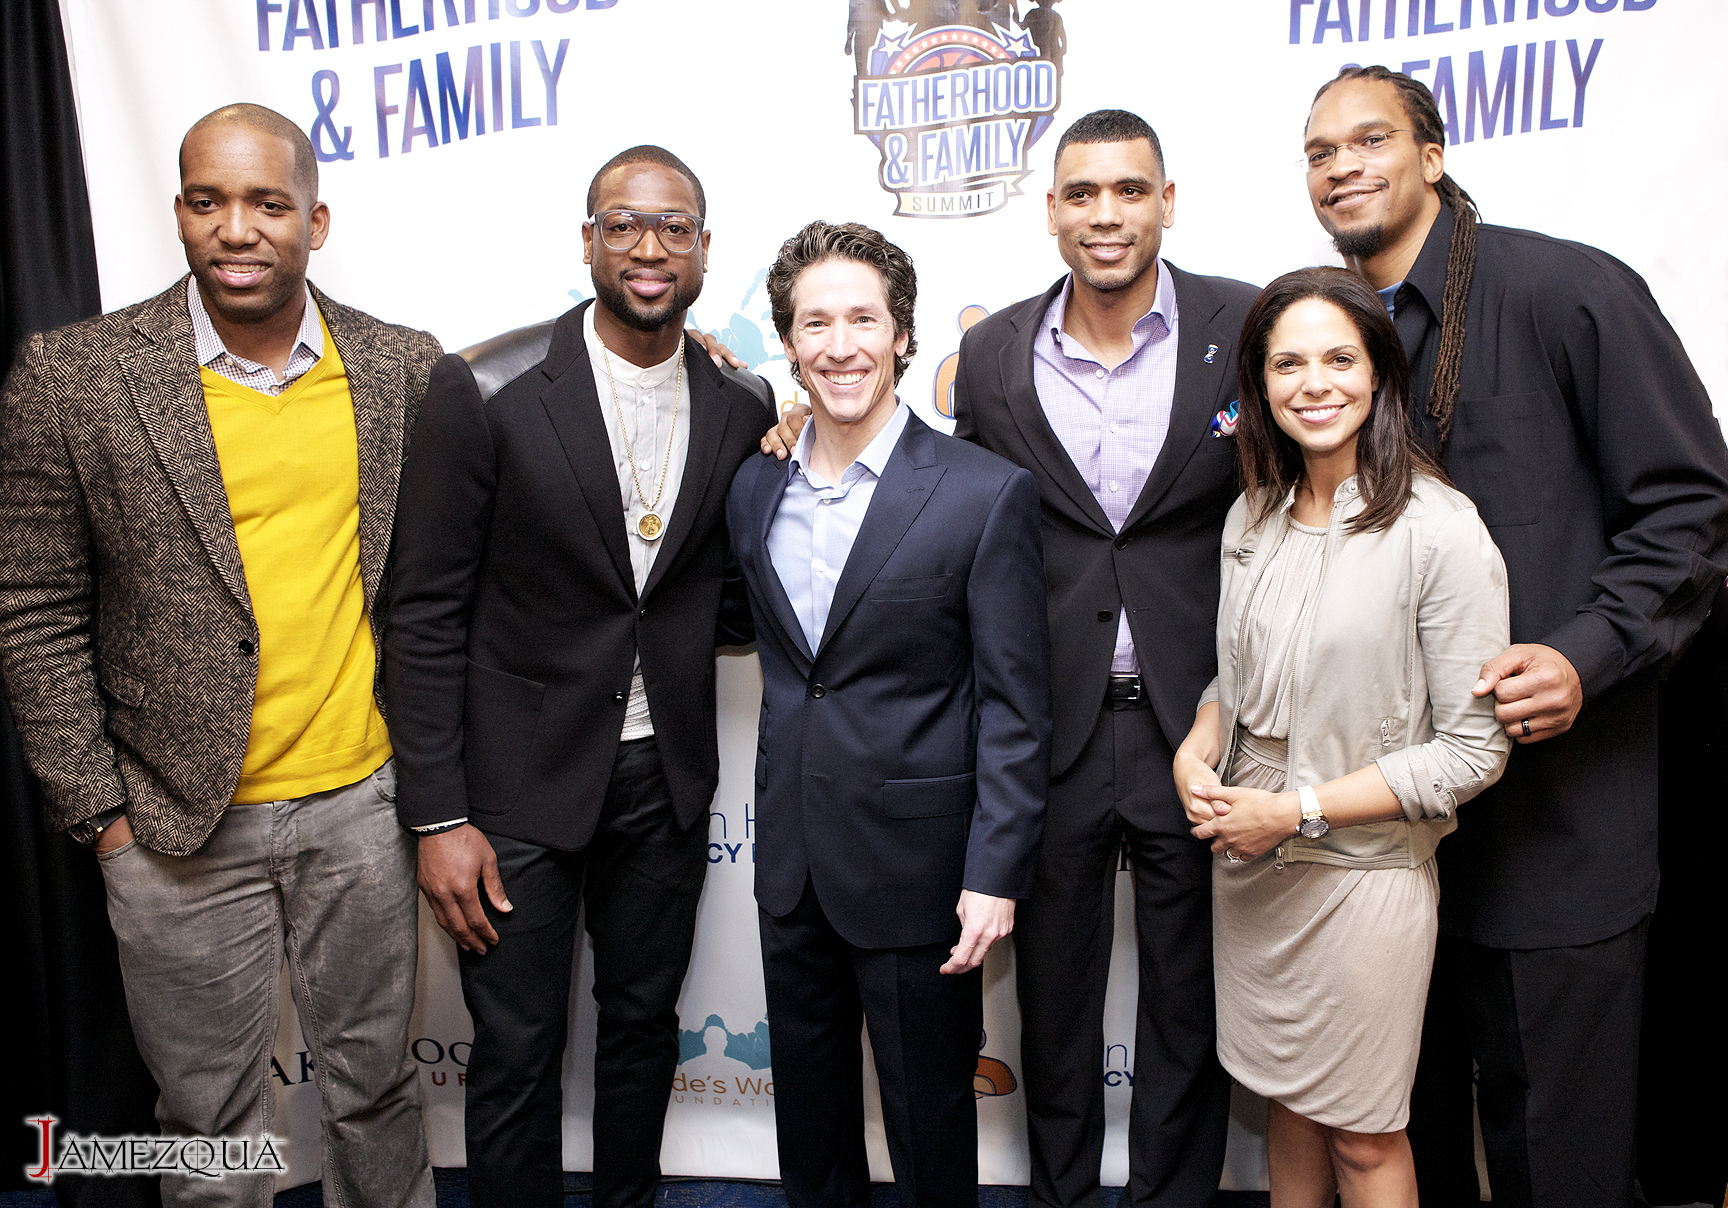 the fatherhood movement The los angeles fatherhood network (lafn) is a collaborative dedicated to  bringing like-minded organizations, agencies, community leaders and fathers.